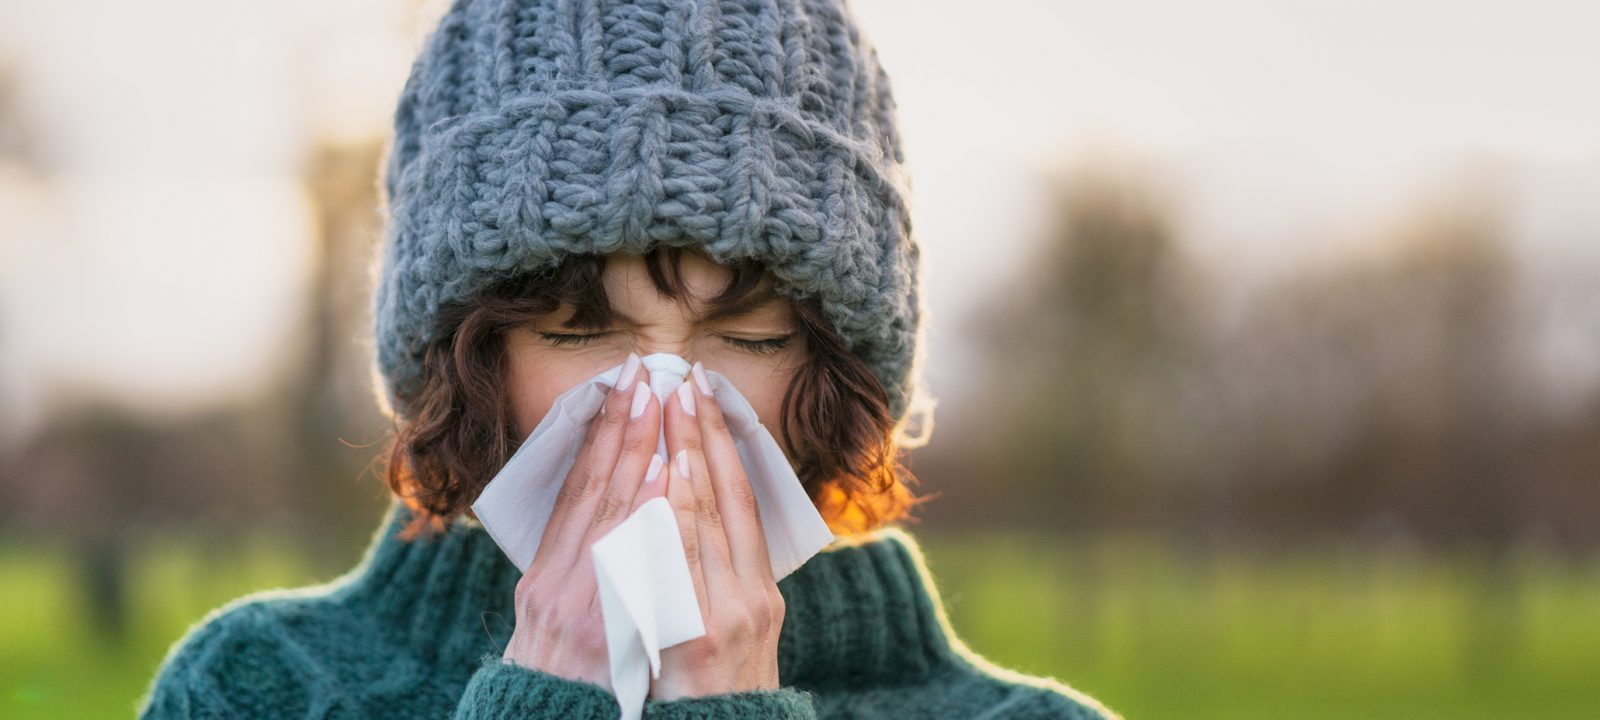 Close-up of a woman suffering from the symptoms of a cold outdoors during winter.